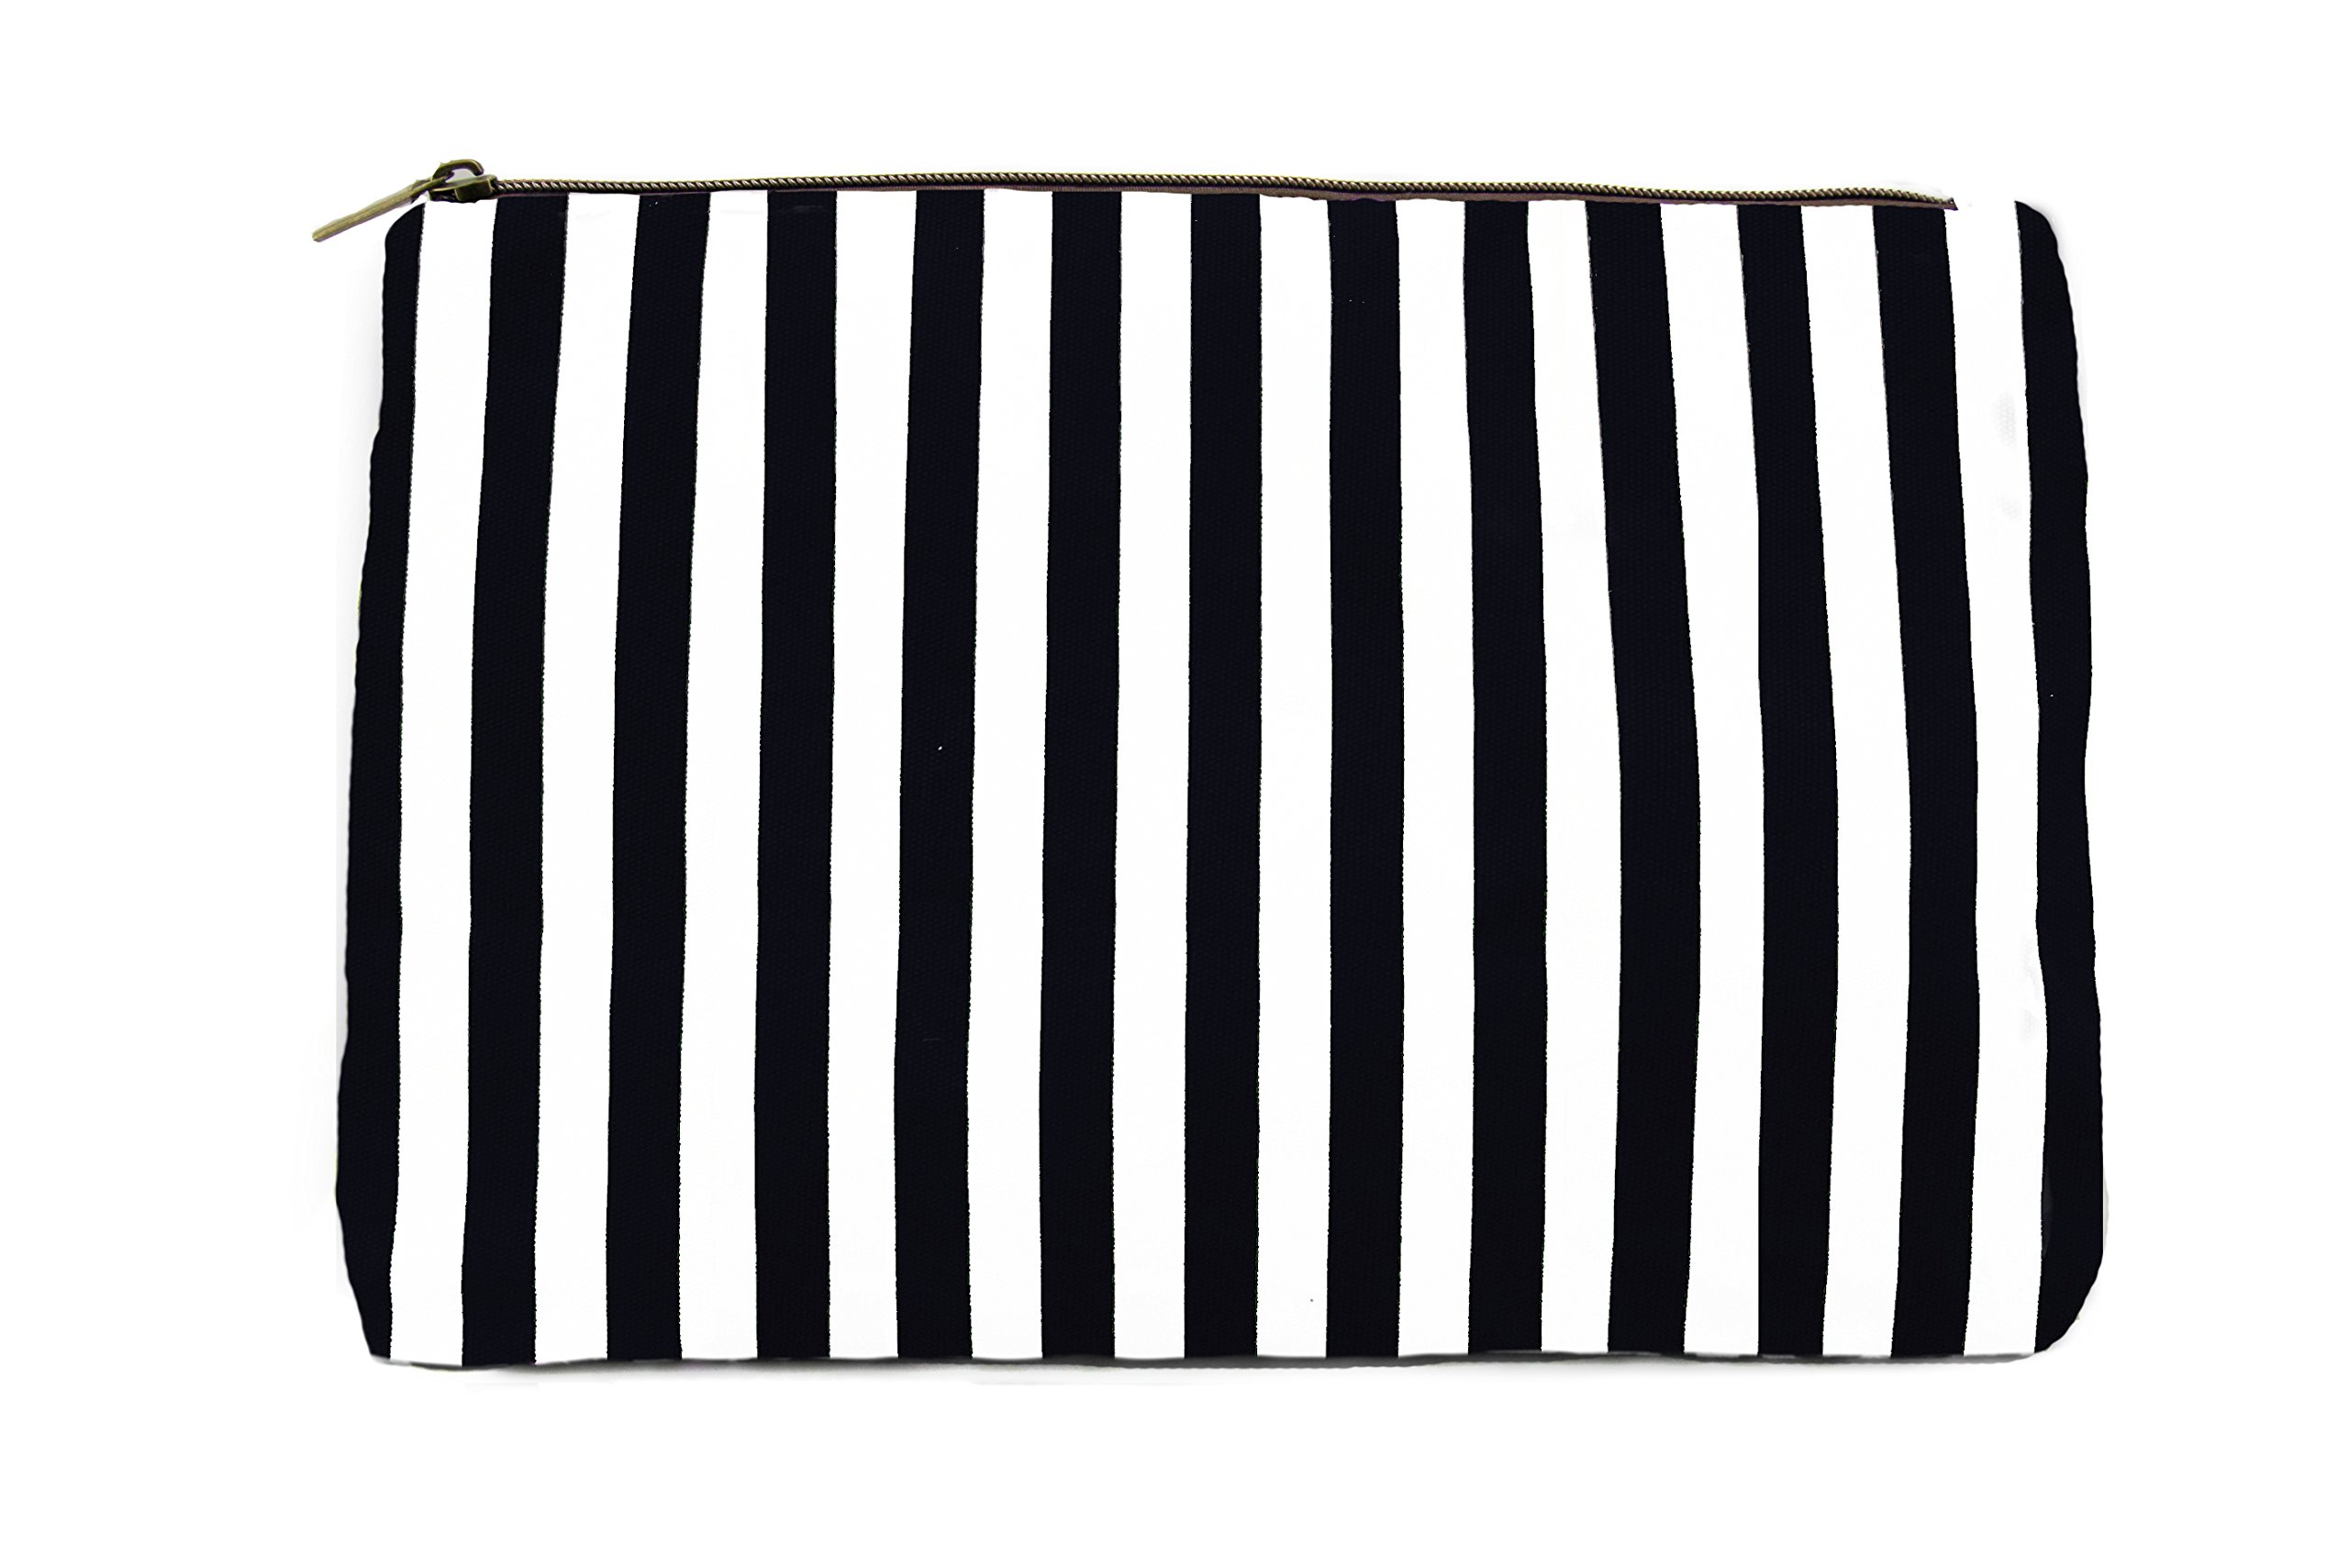 Limited Time Sale - Black Womens Striped Cosmetic Bag, Makeup Bag, Toiletry Bag, Organizer Bag, Small Travel Bag, Cosmetic Case, Makeup Pouch, Wallet, Jewelry Travel Bag (Black) - MSRP $38